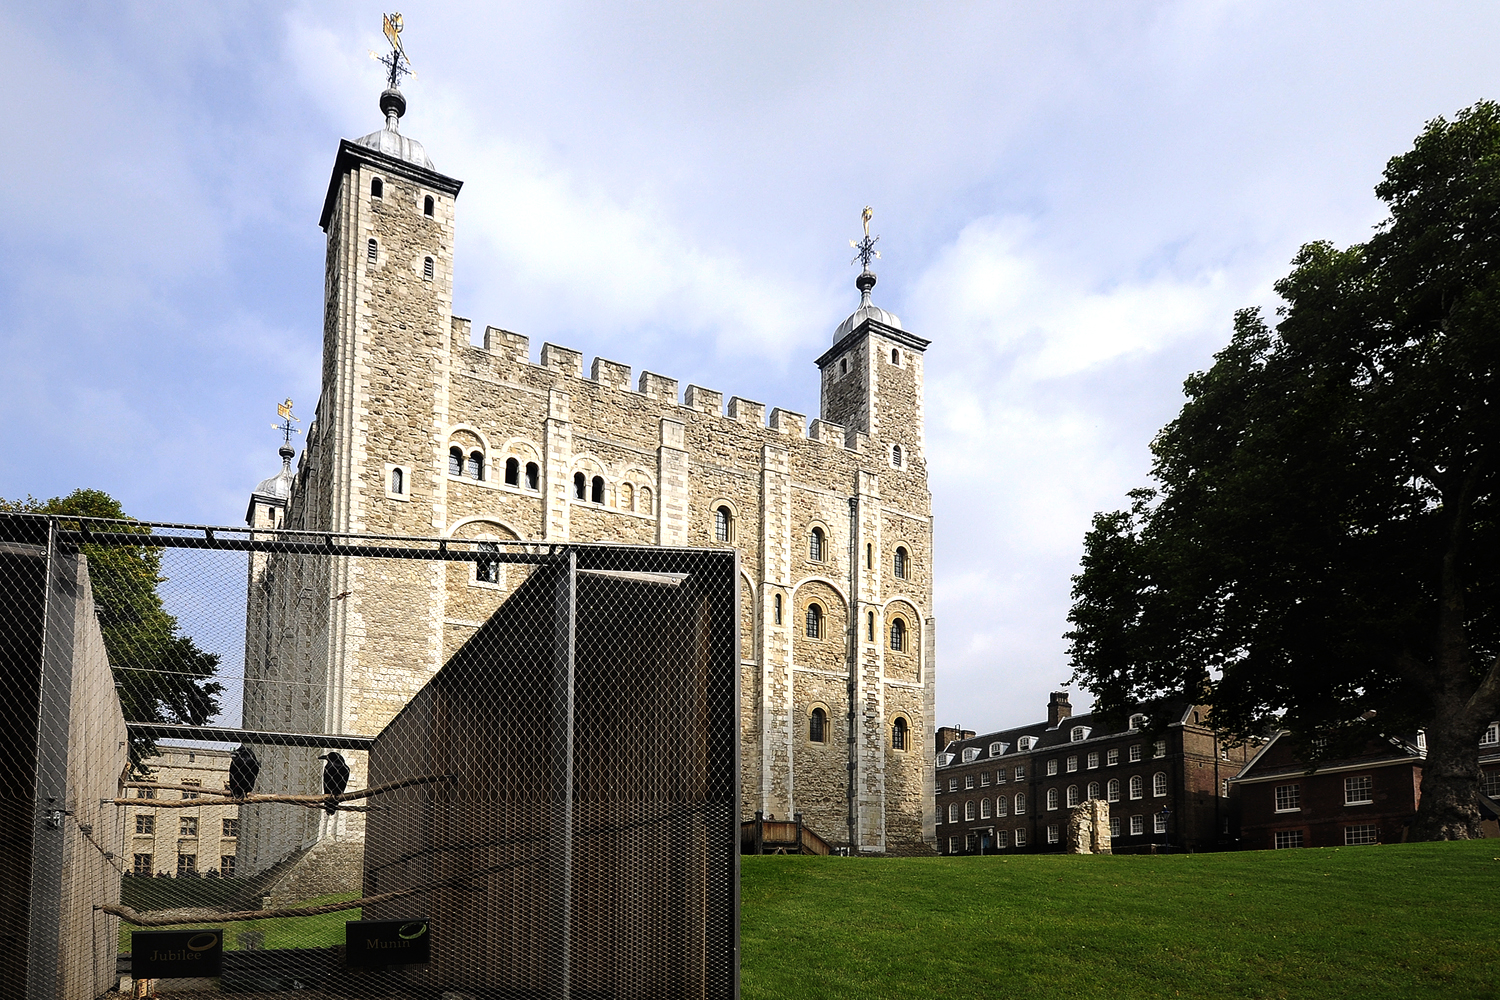 Raven cages to house the iconic birds are beside White Tower at the Tower of London